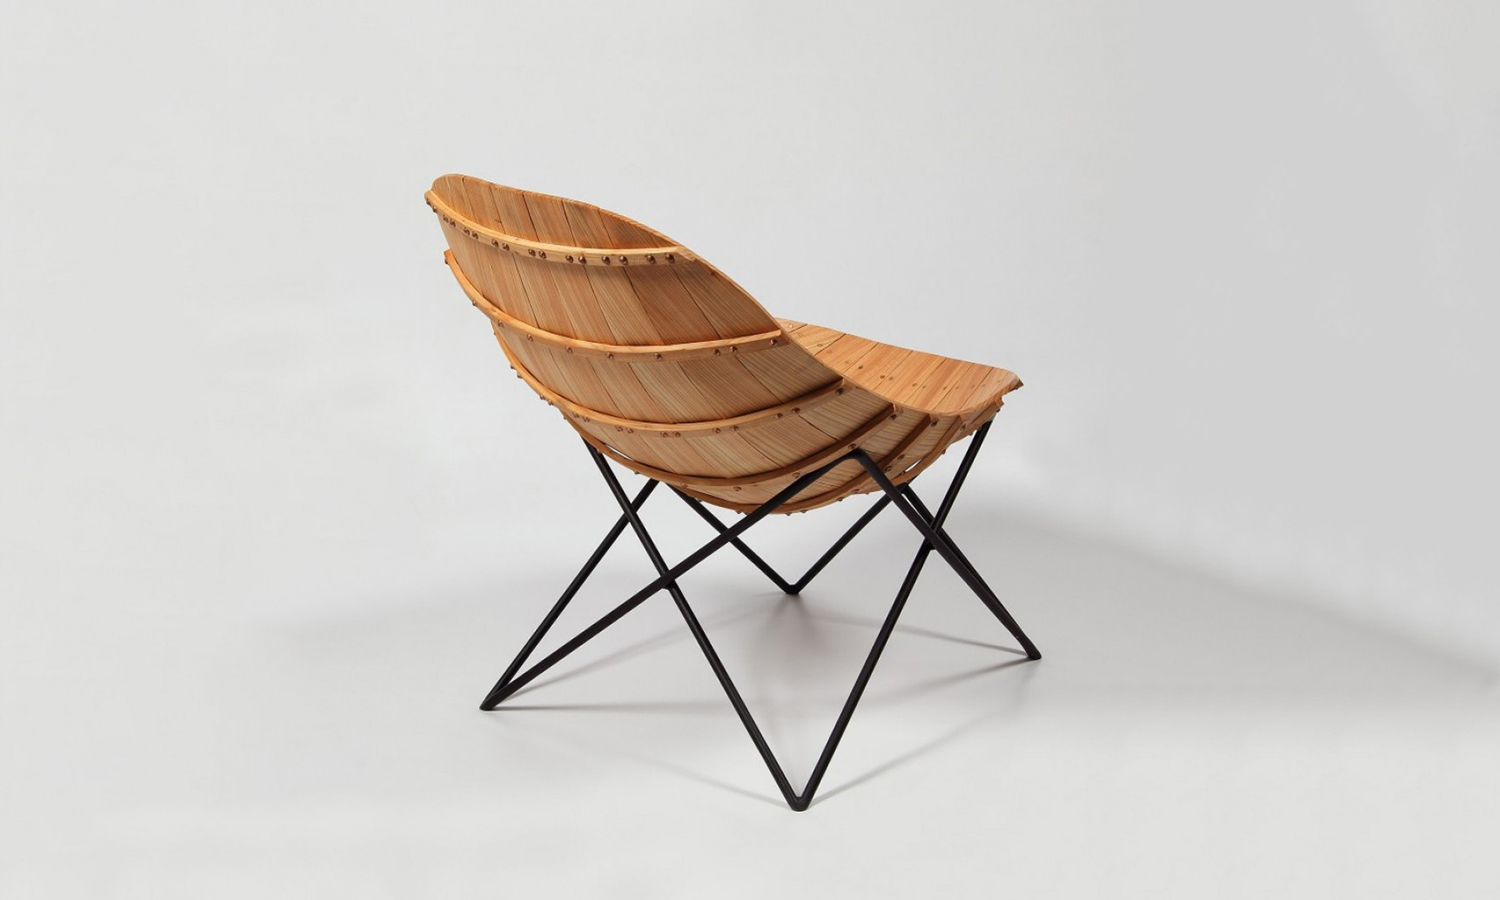 The Carvel Chair Inspired by Boat Building